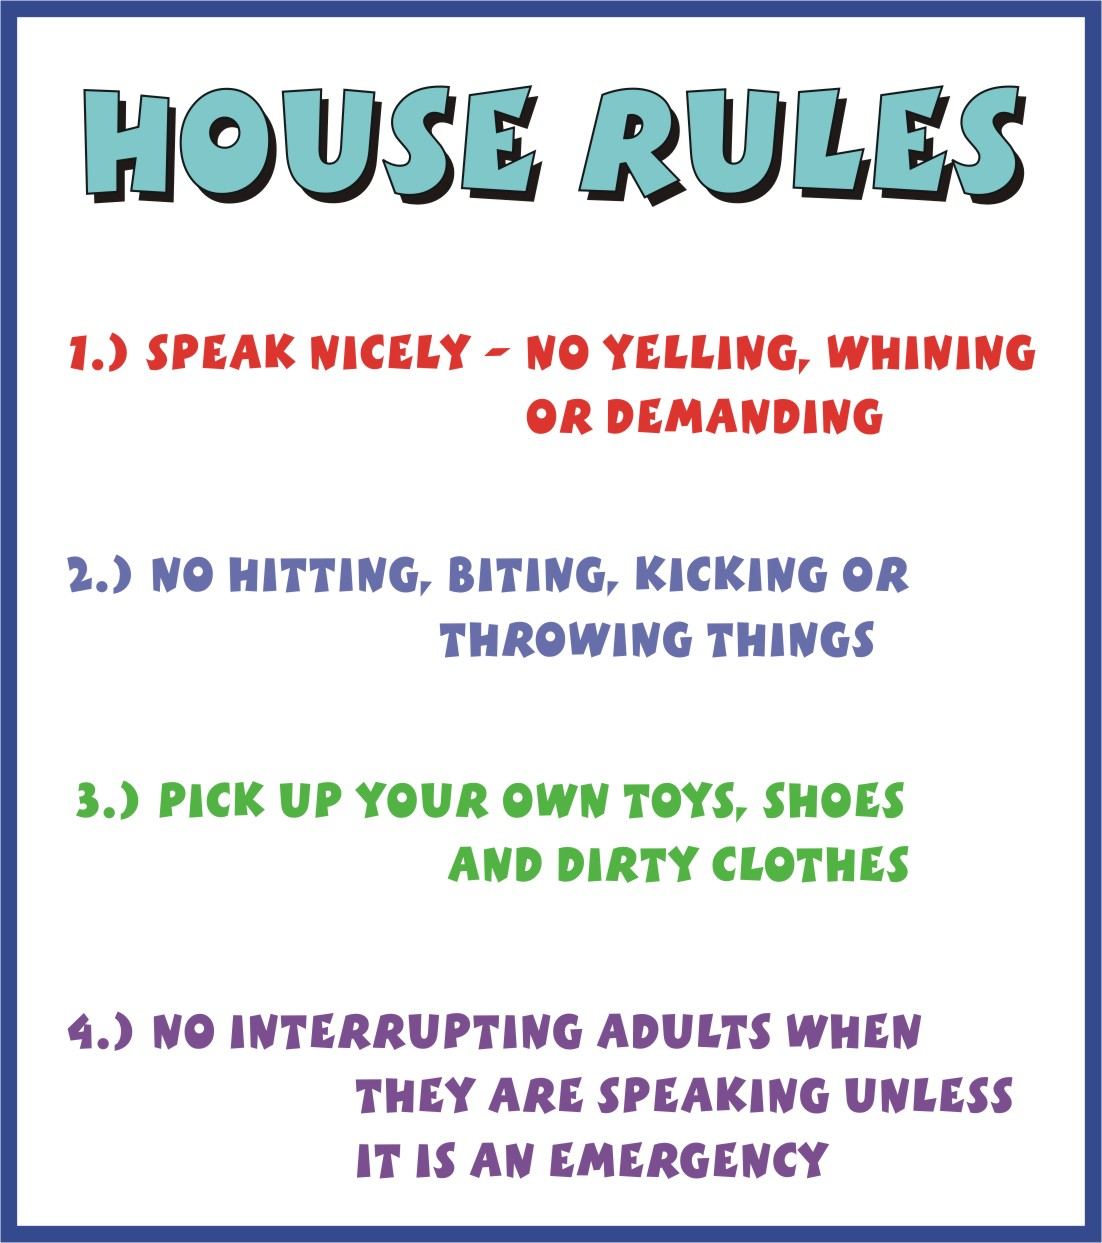 In House Rules Simple Minimalist Home Ideas